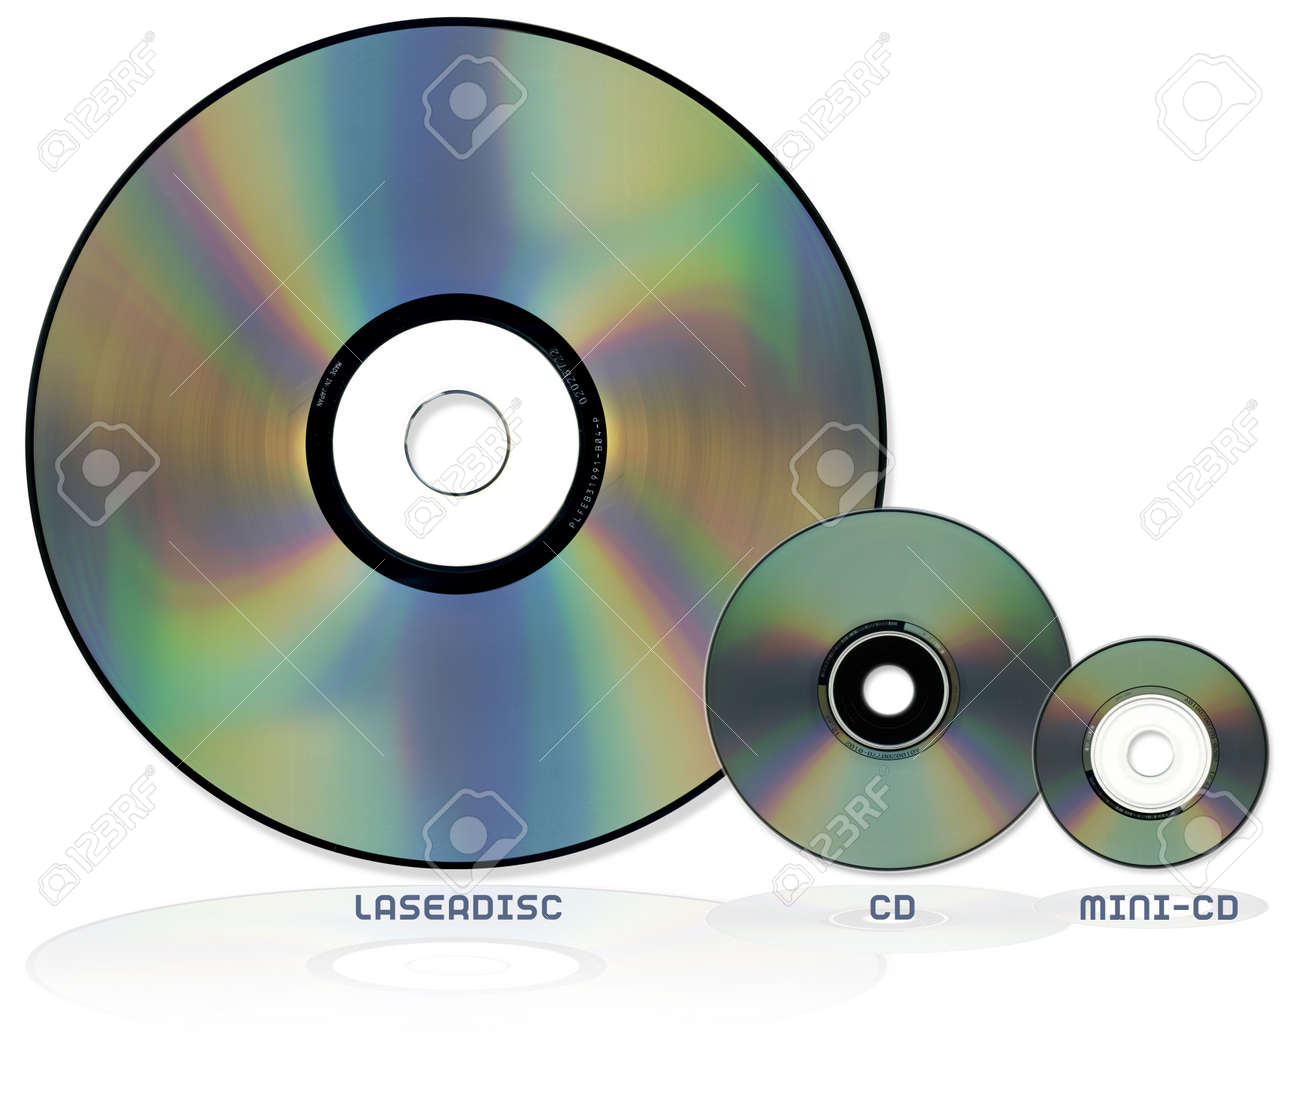 Selection of optical disc formats including Laserdisc CD and Mini CD all  show to scale.